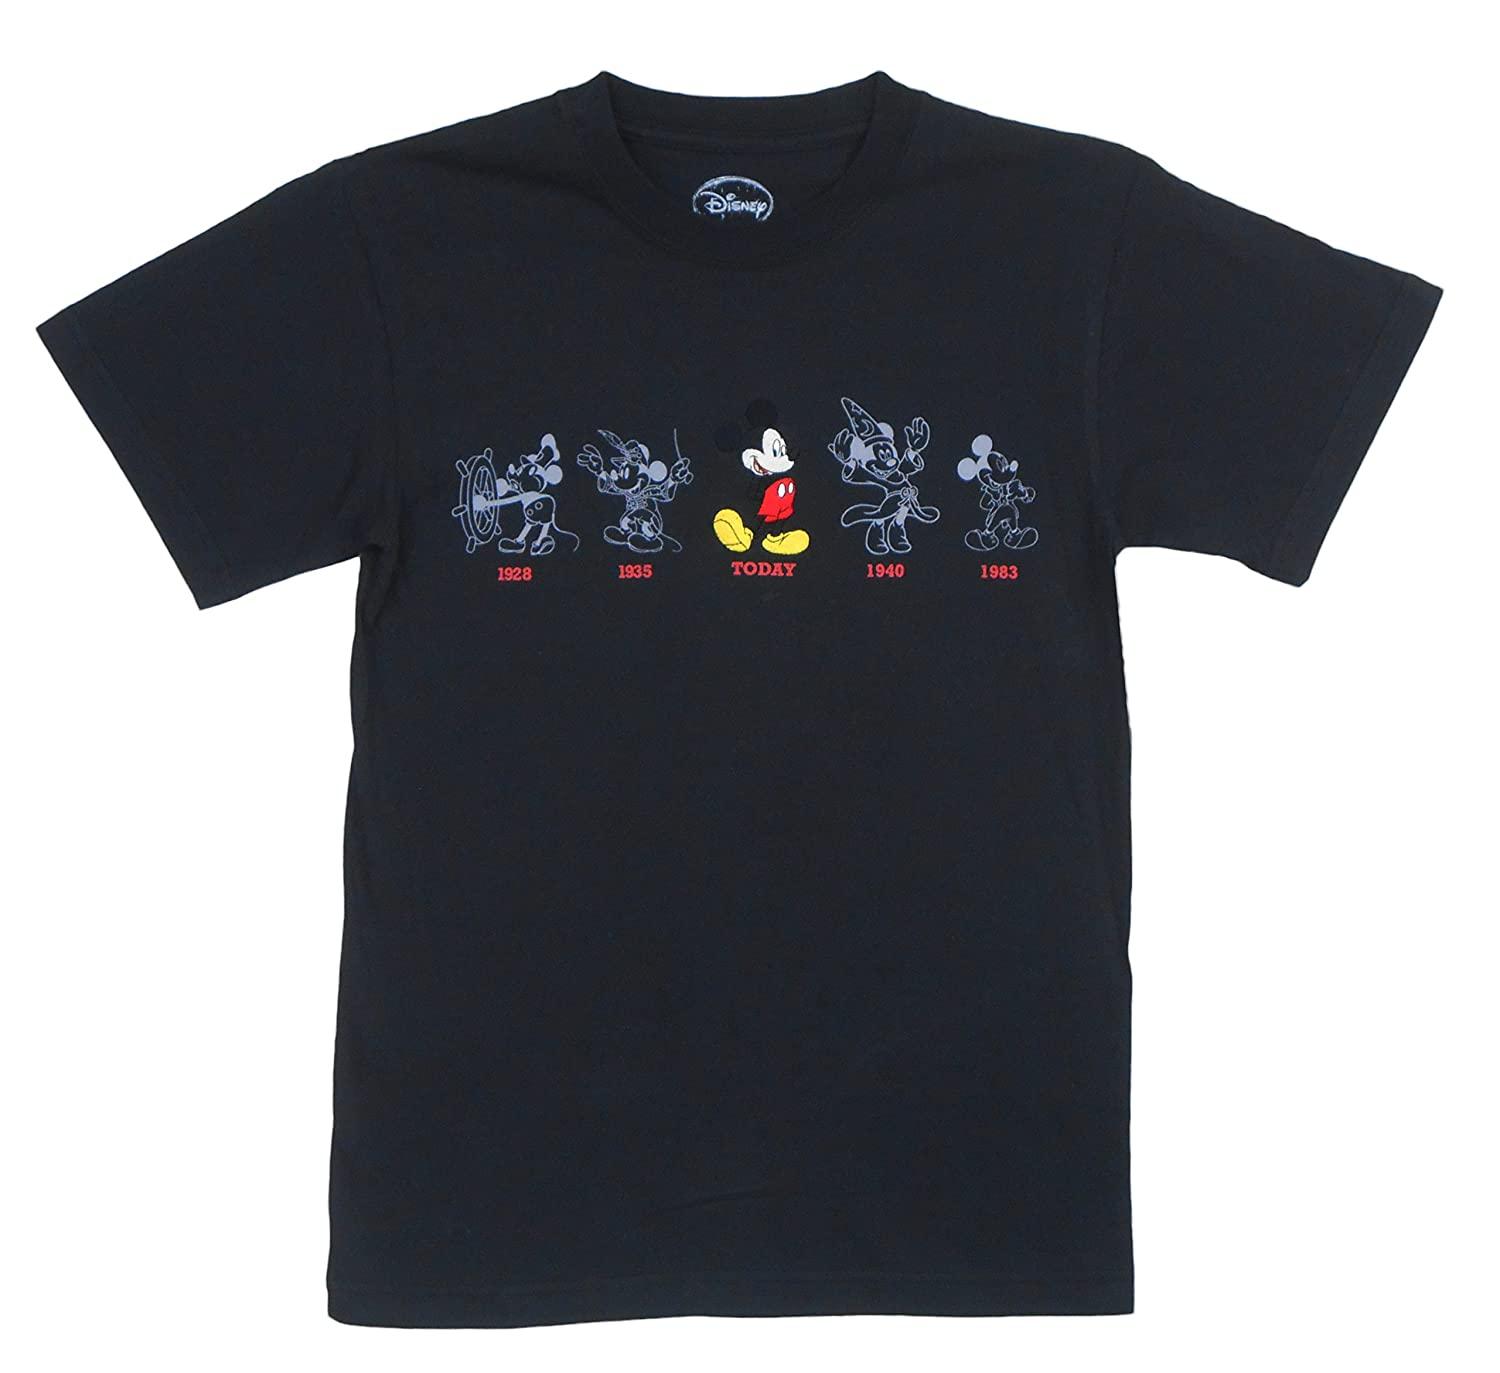 Disney Adult Embroidered Mickey Mouse Evolution Tee Black Xtra-Large